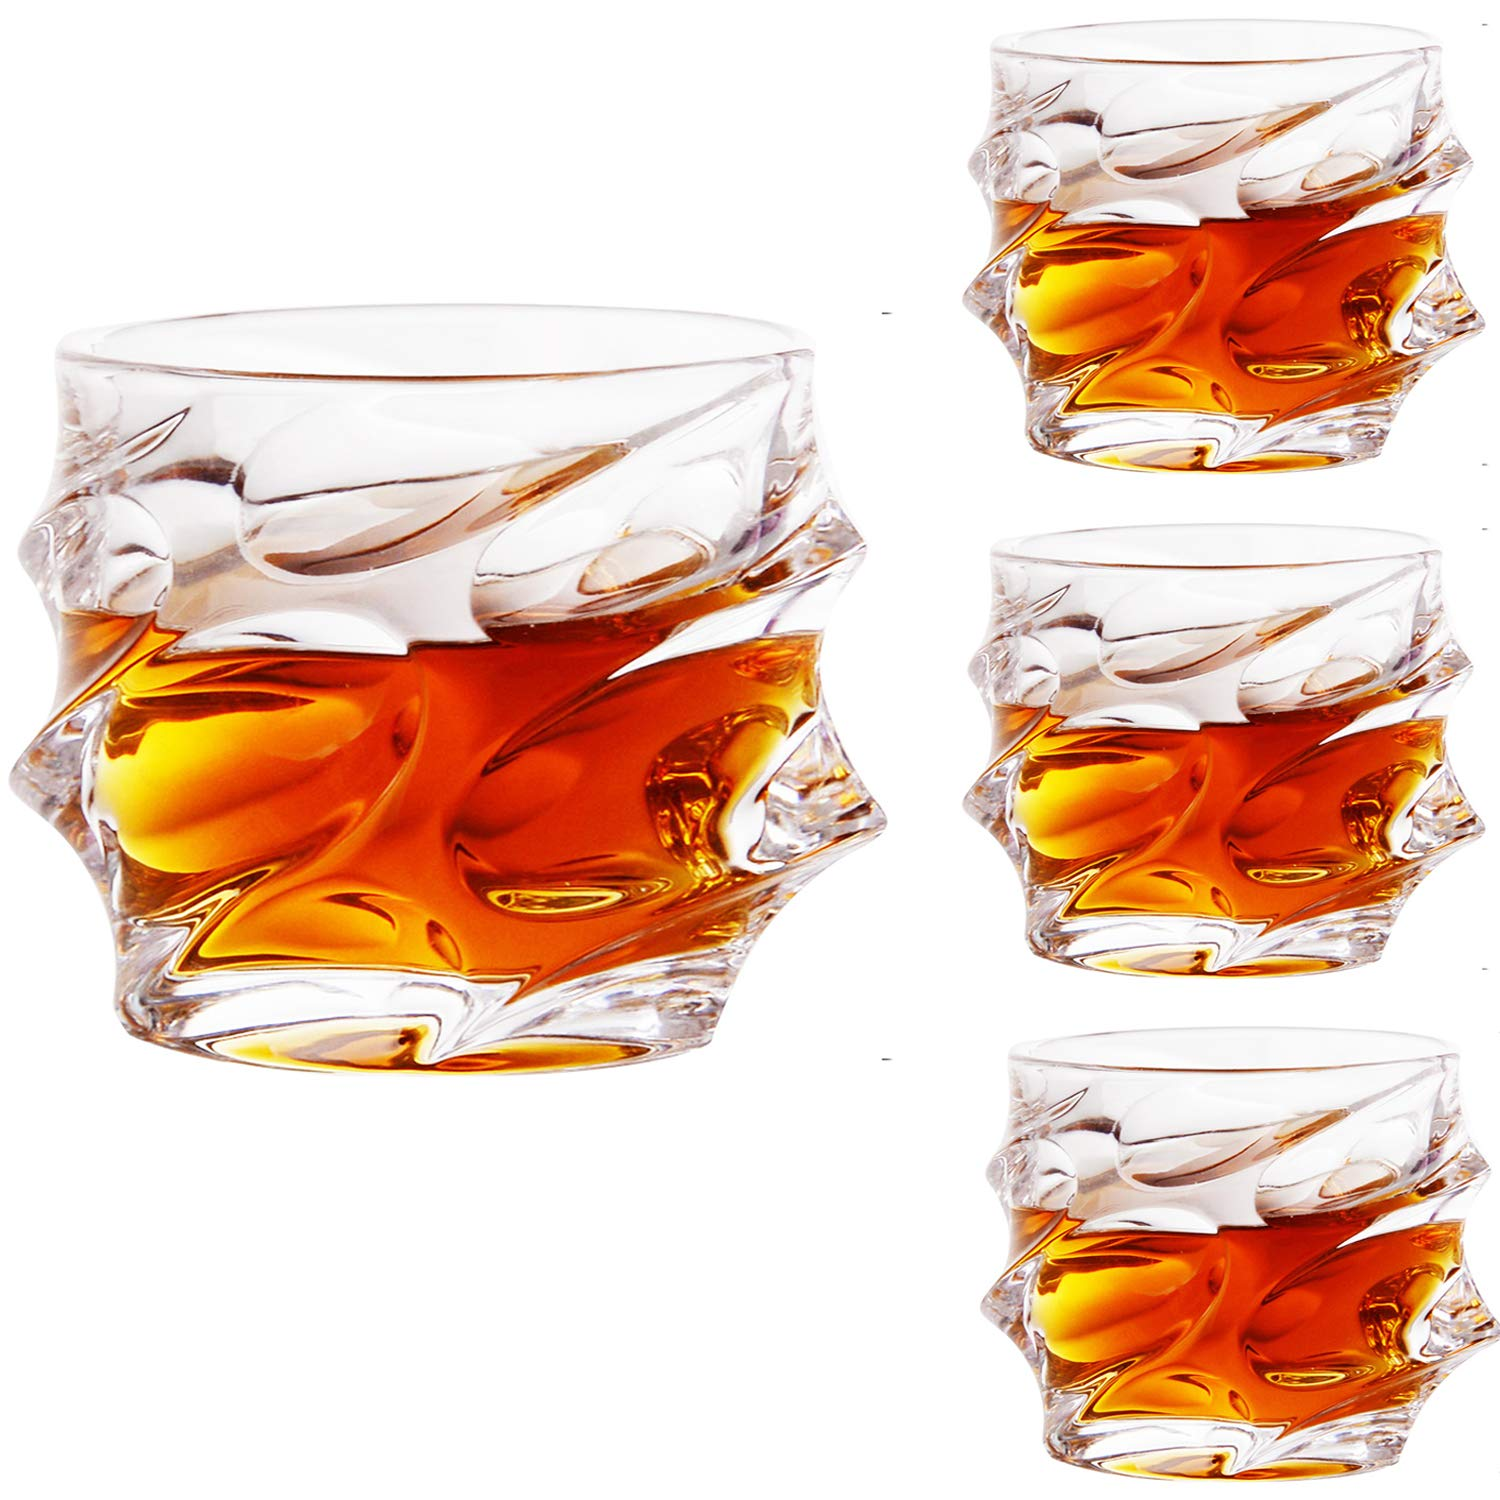 Jiabang Whisky Glasses Set of 4 Crystal Tumblers Old Fashioned Glass Large 10 O z Glass Tumbler for Scotch, Bourbon, Tequila, Vodka, Brandy